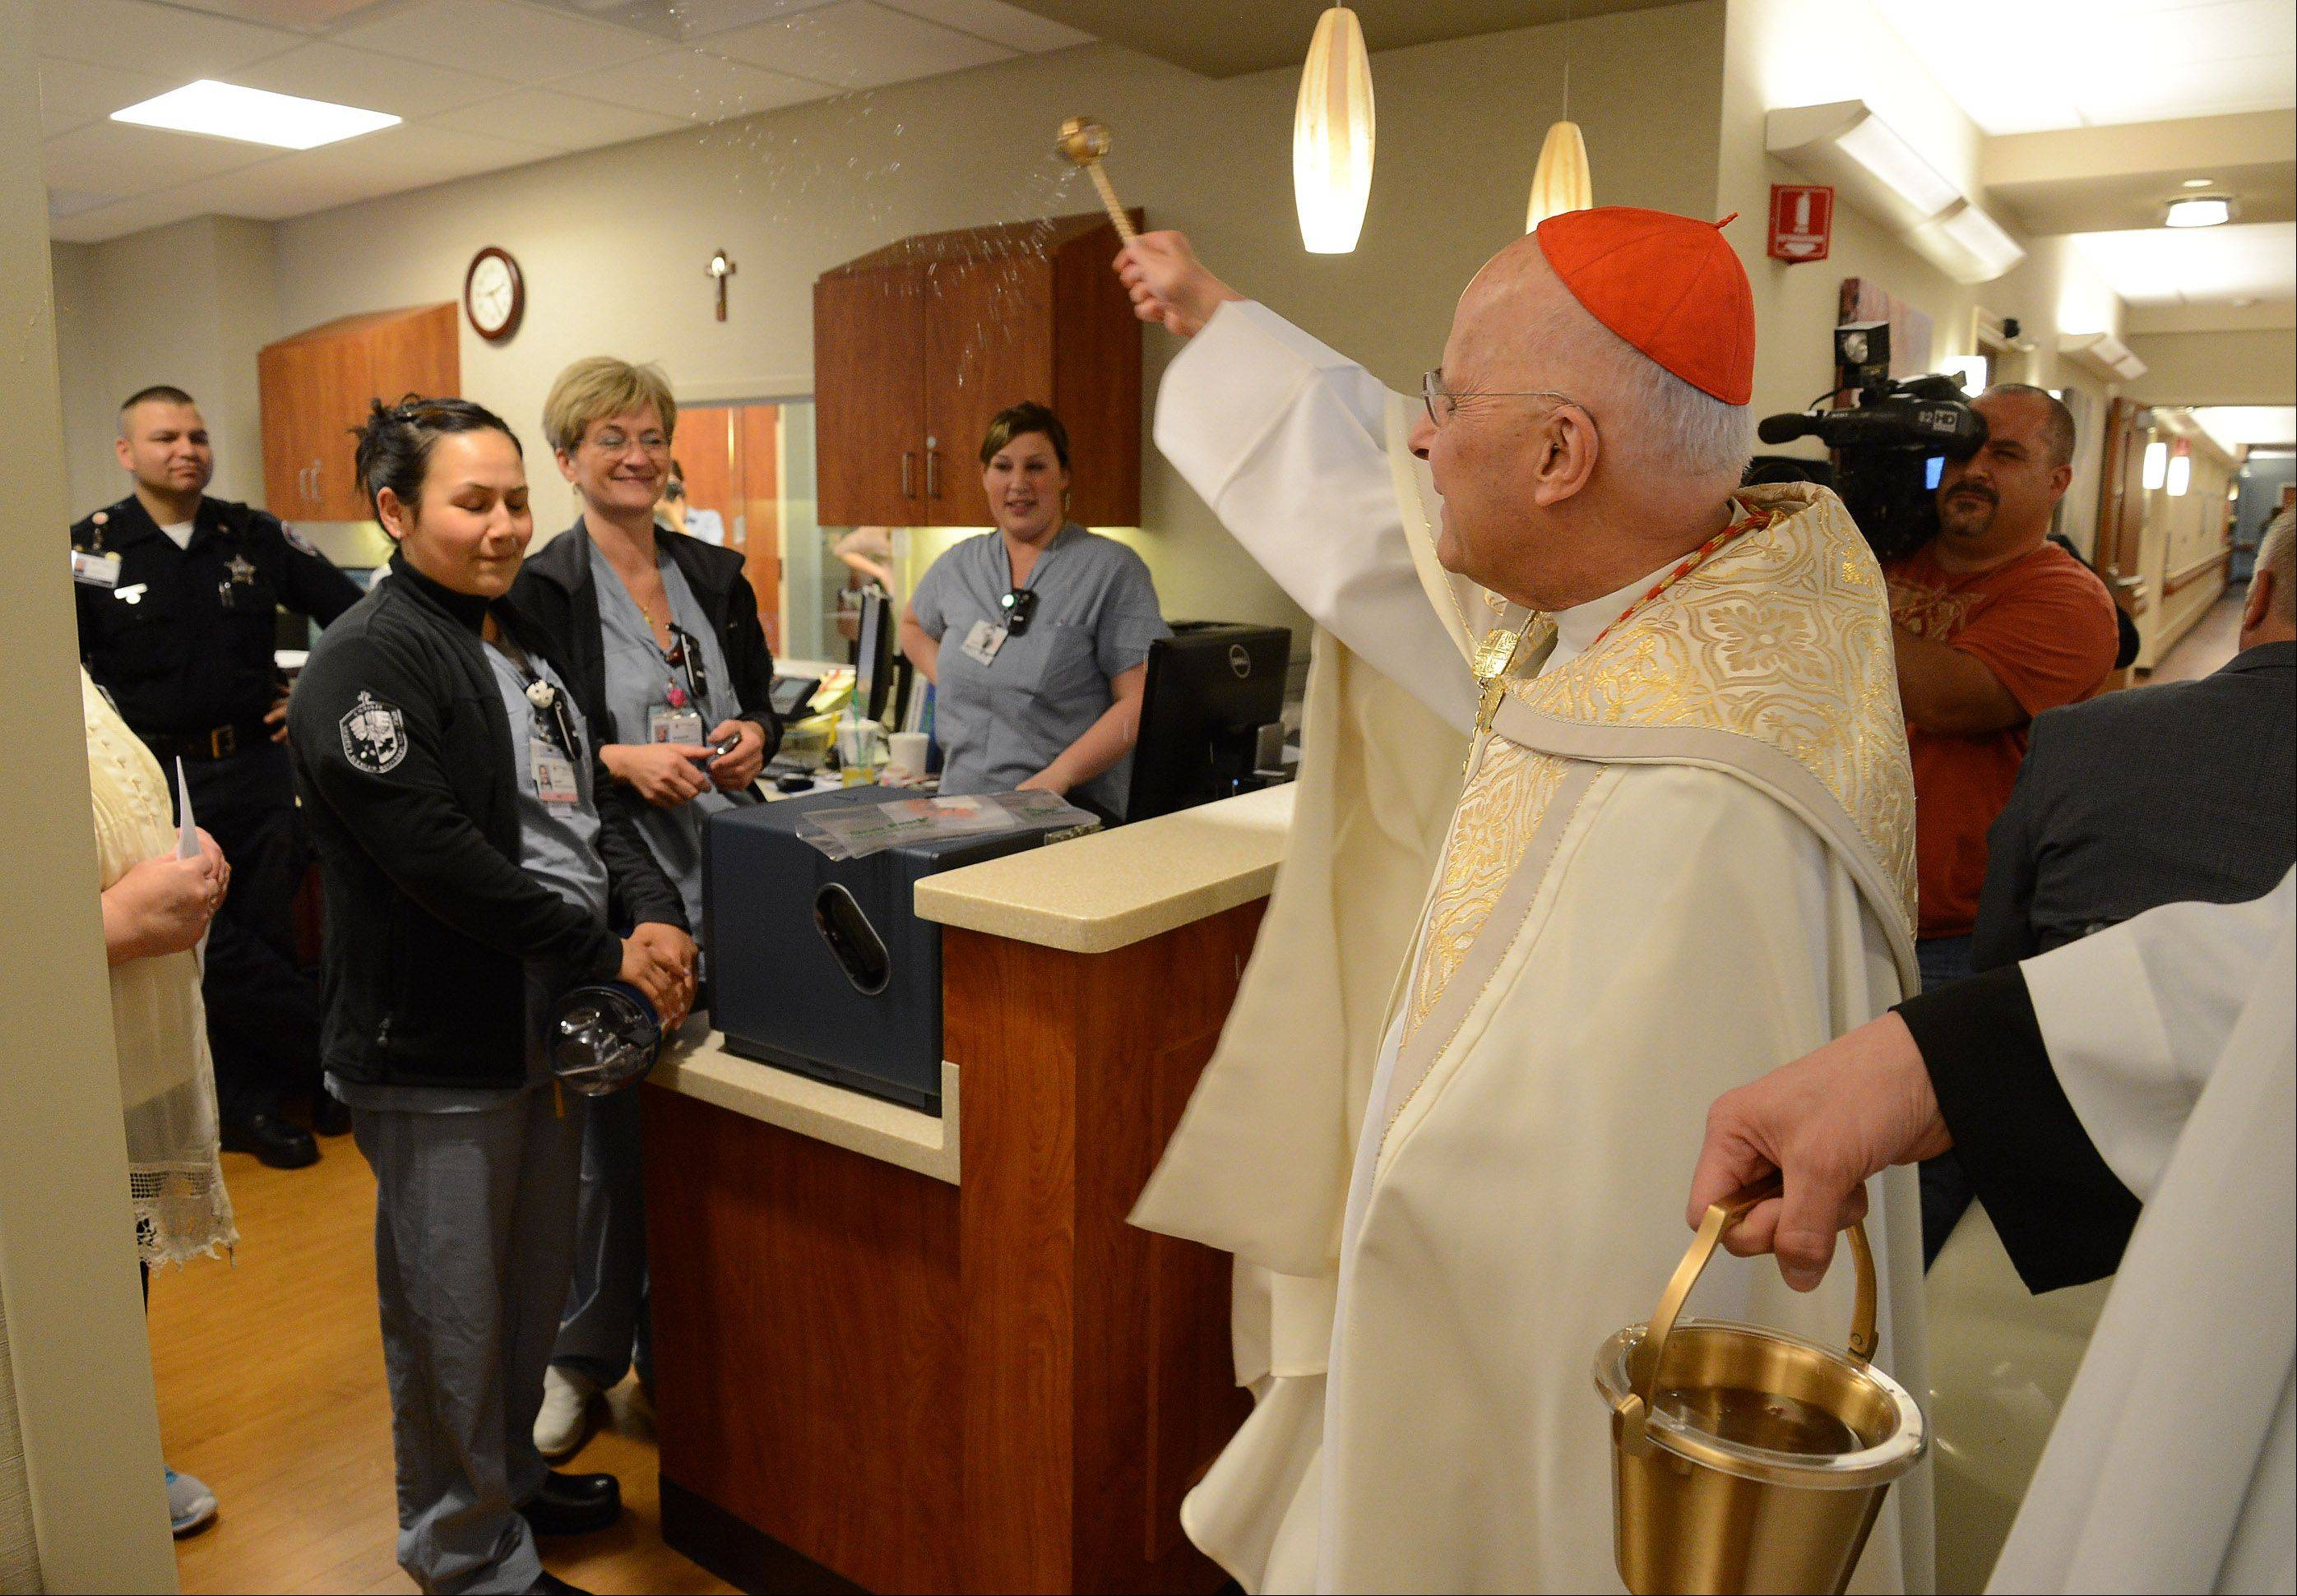 Cardinal Francis George blesses the staff, patients and families of the new Alexian Brothers Women & Children's Hospital in Hoffman Estates on Monday.